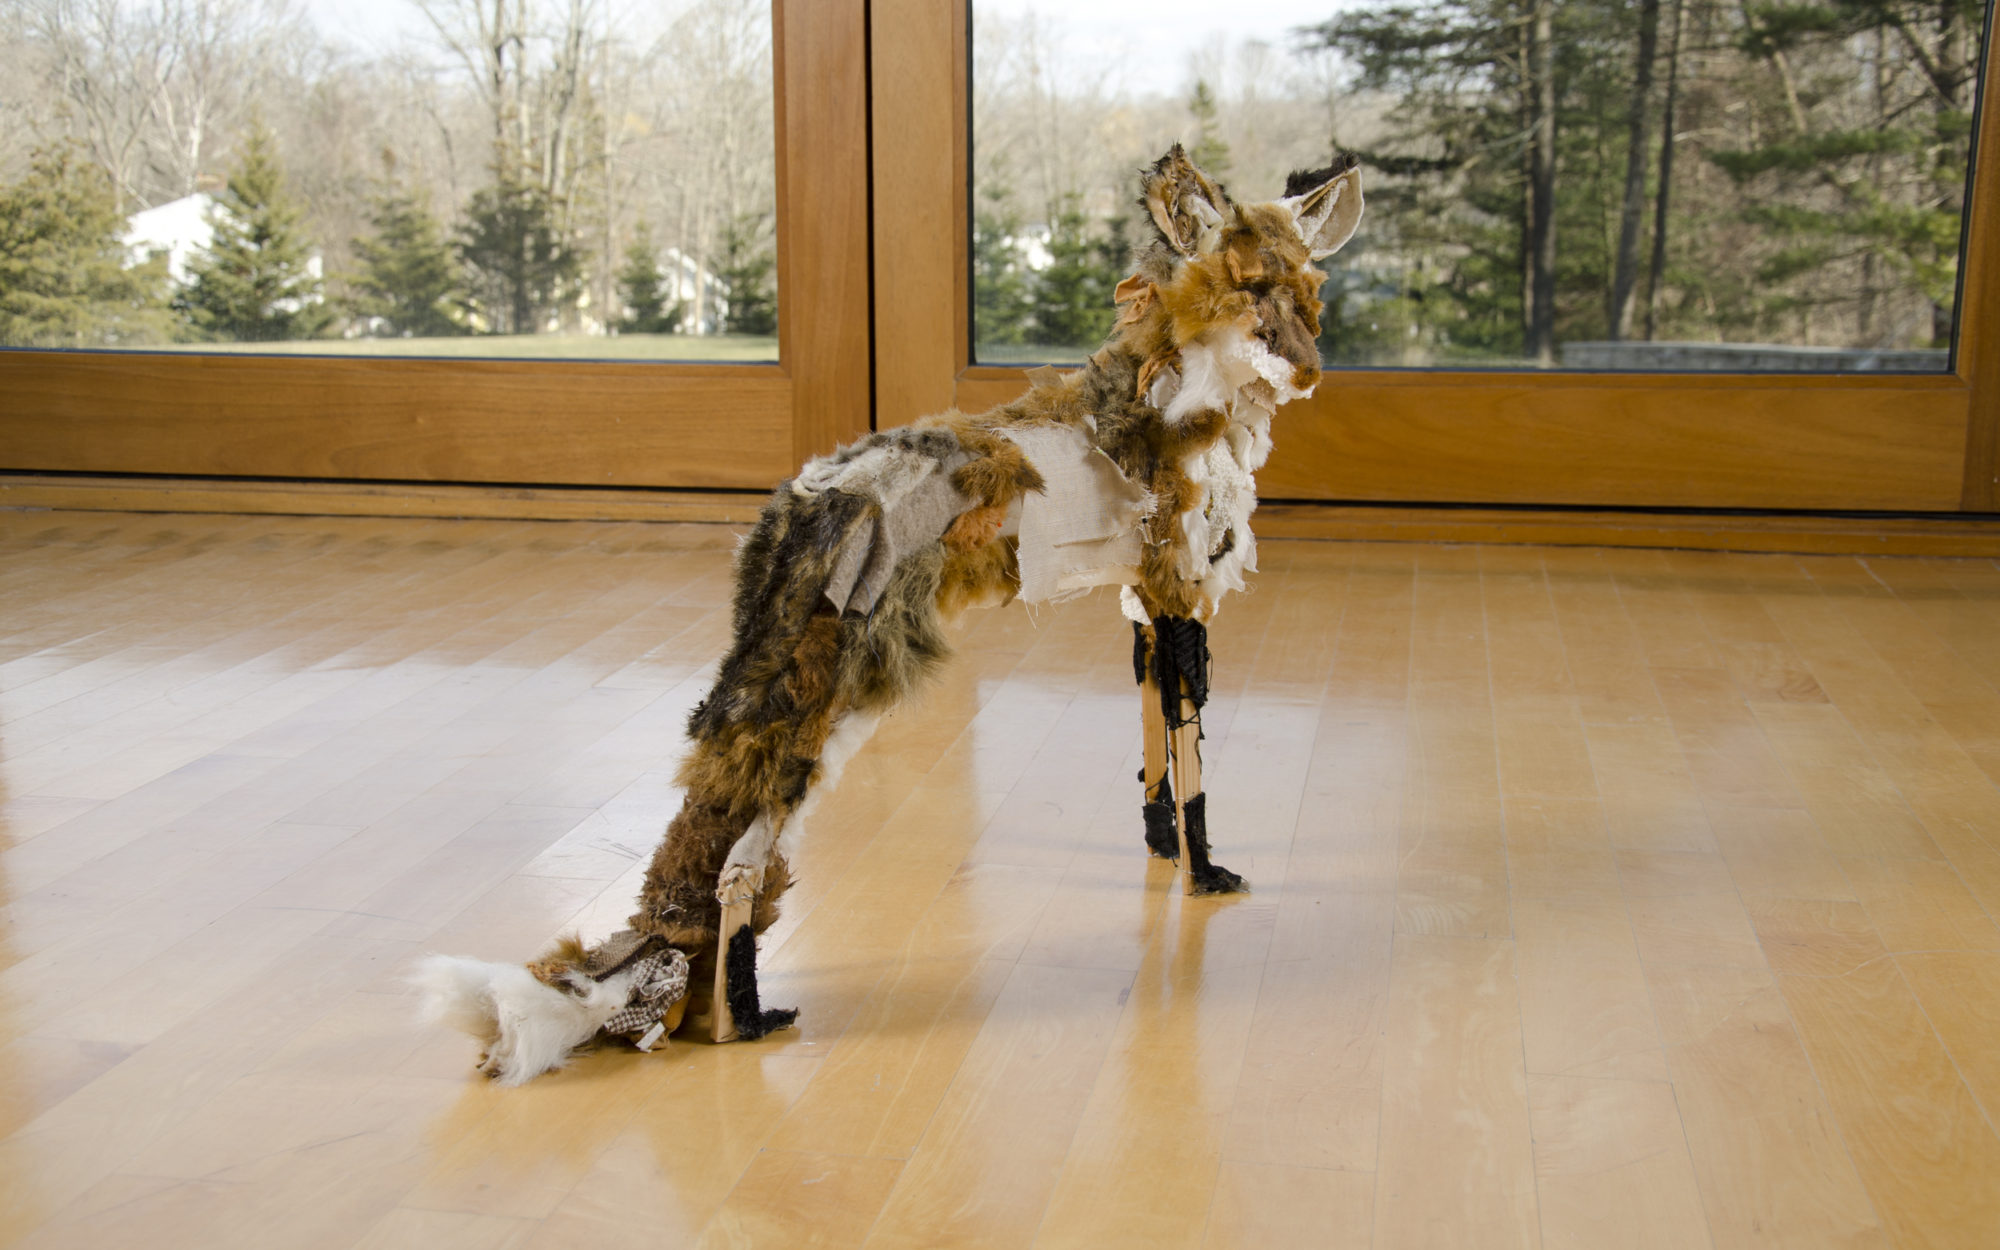 Small fox-like figure sits on the gallery floor